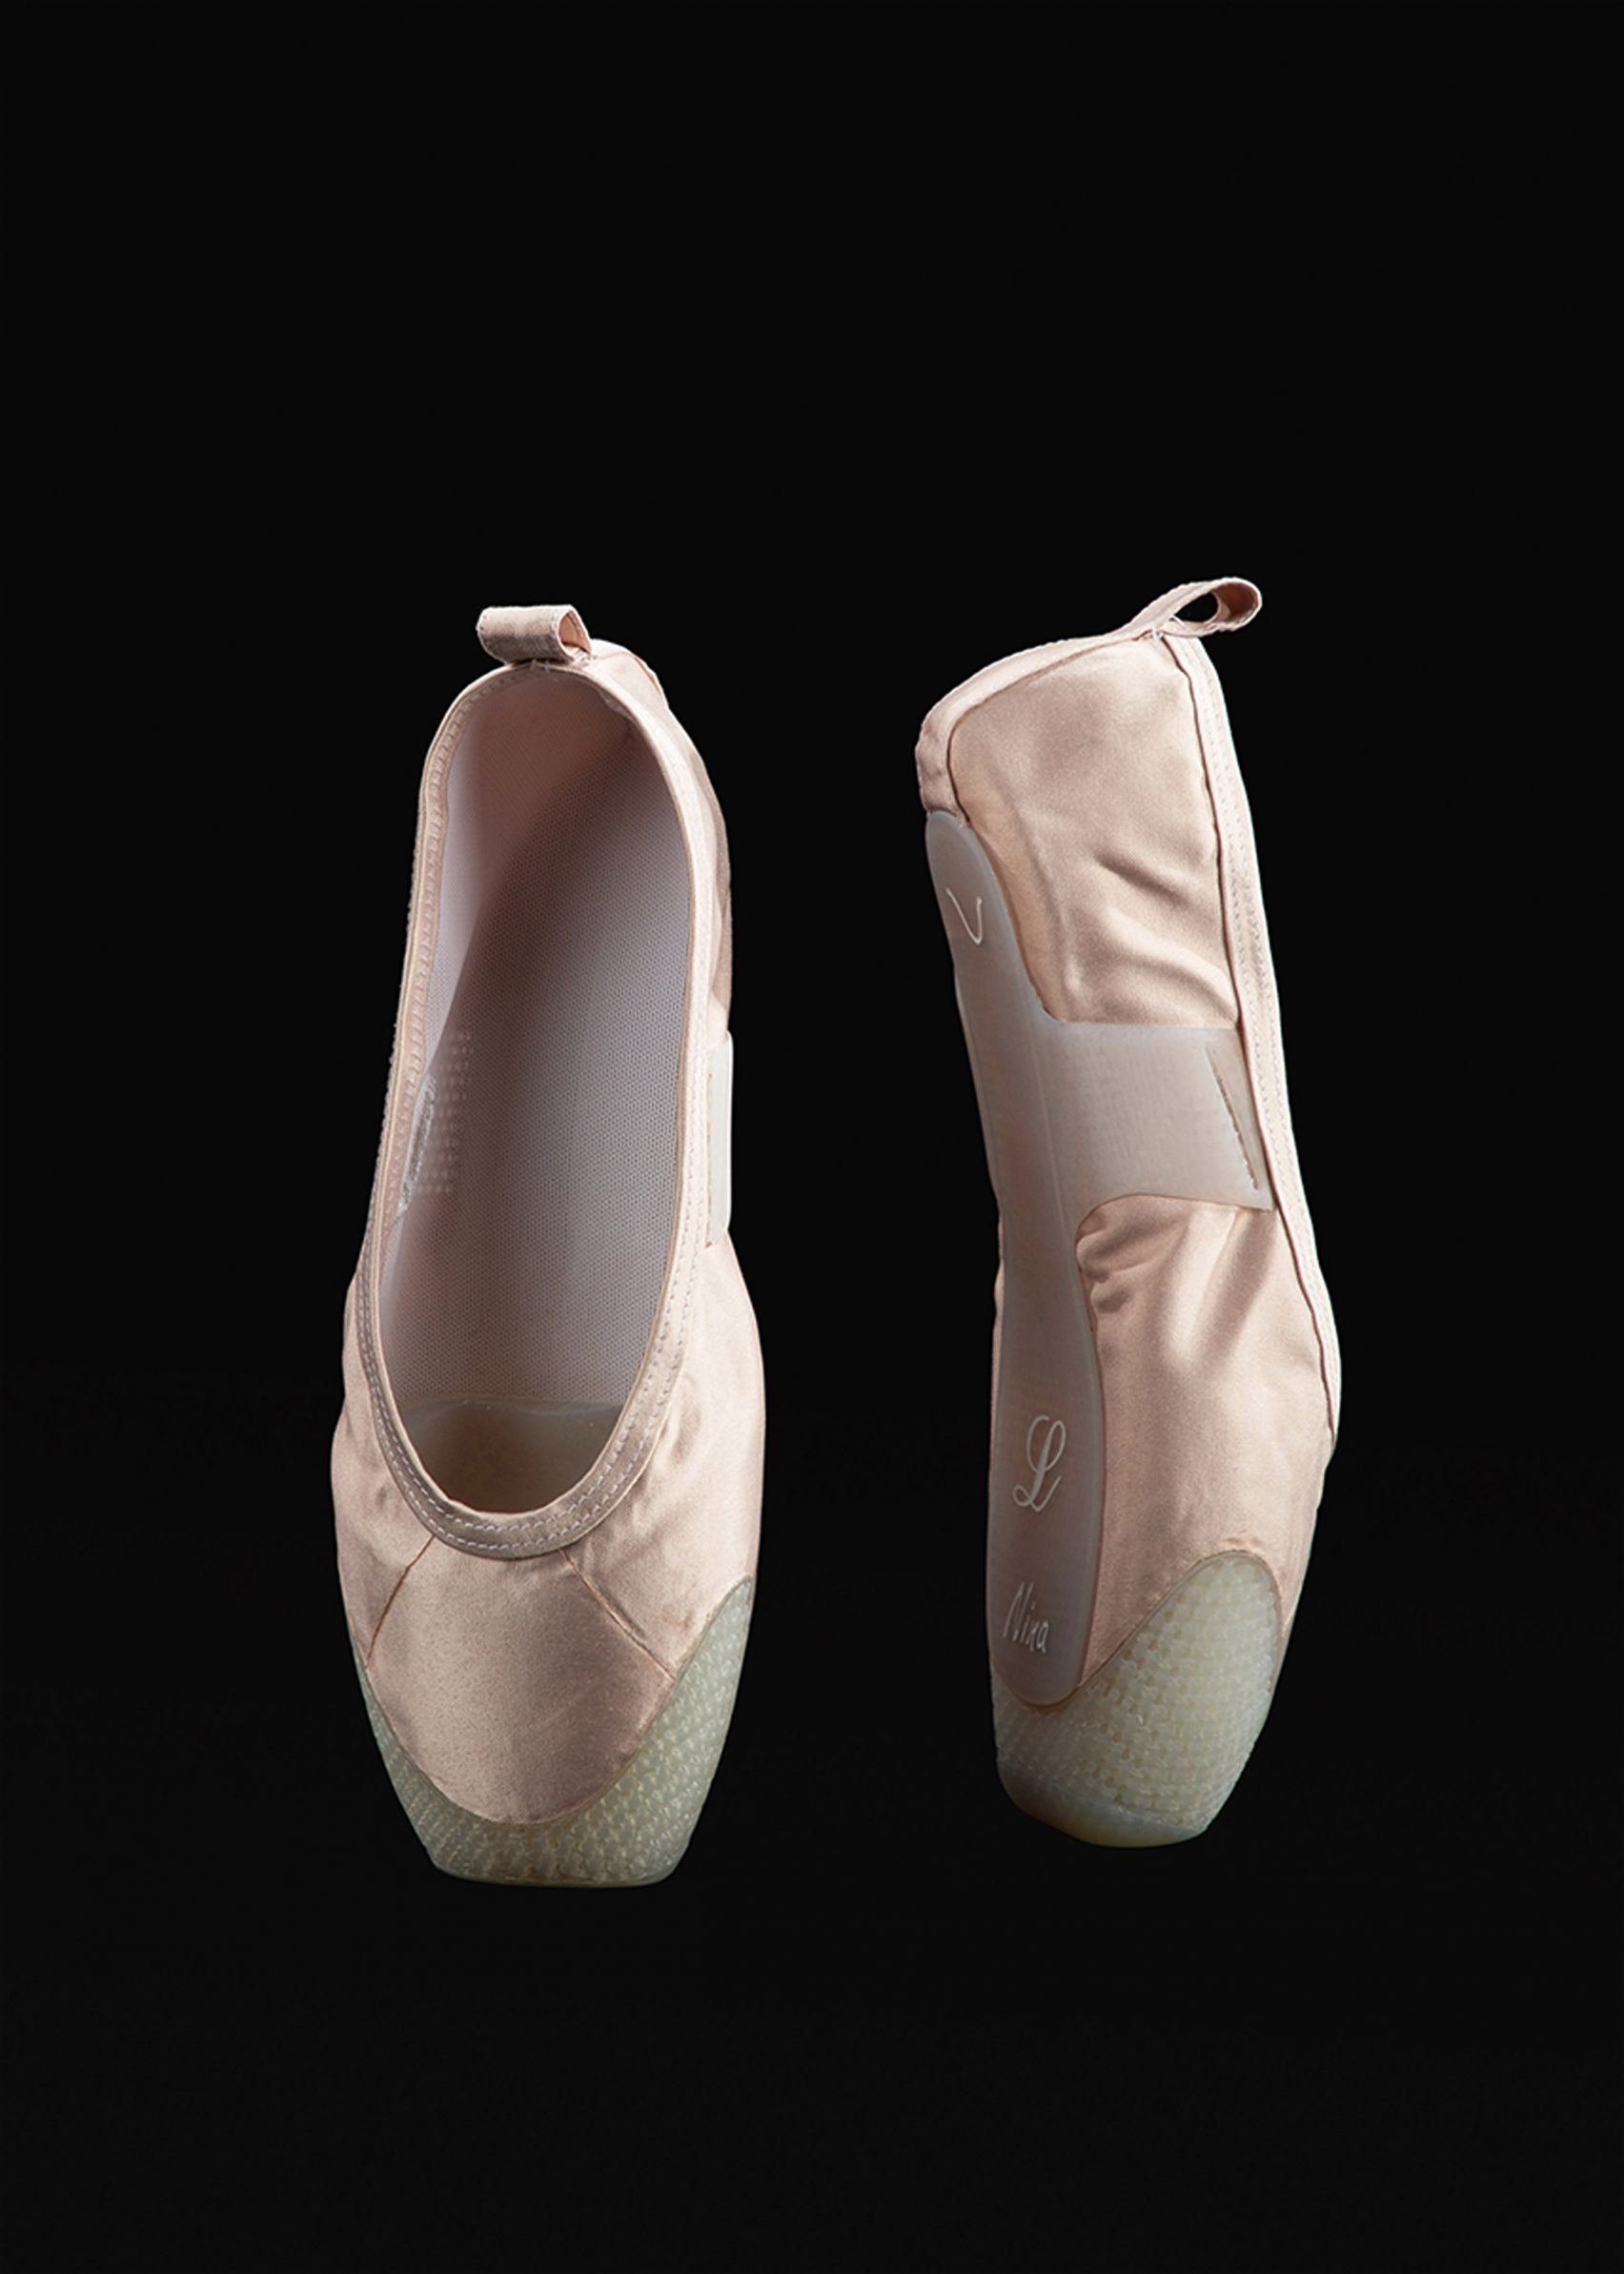 3d Printed Ballet Shoes Offer Dancers Support And